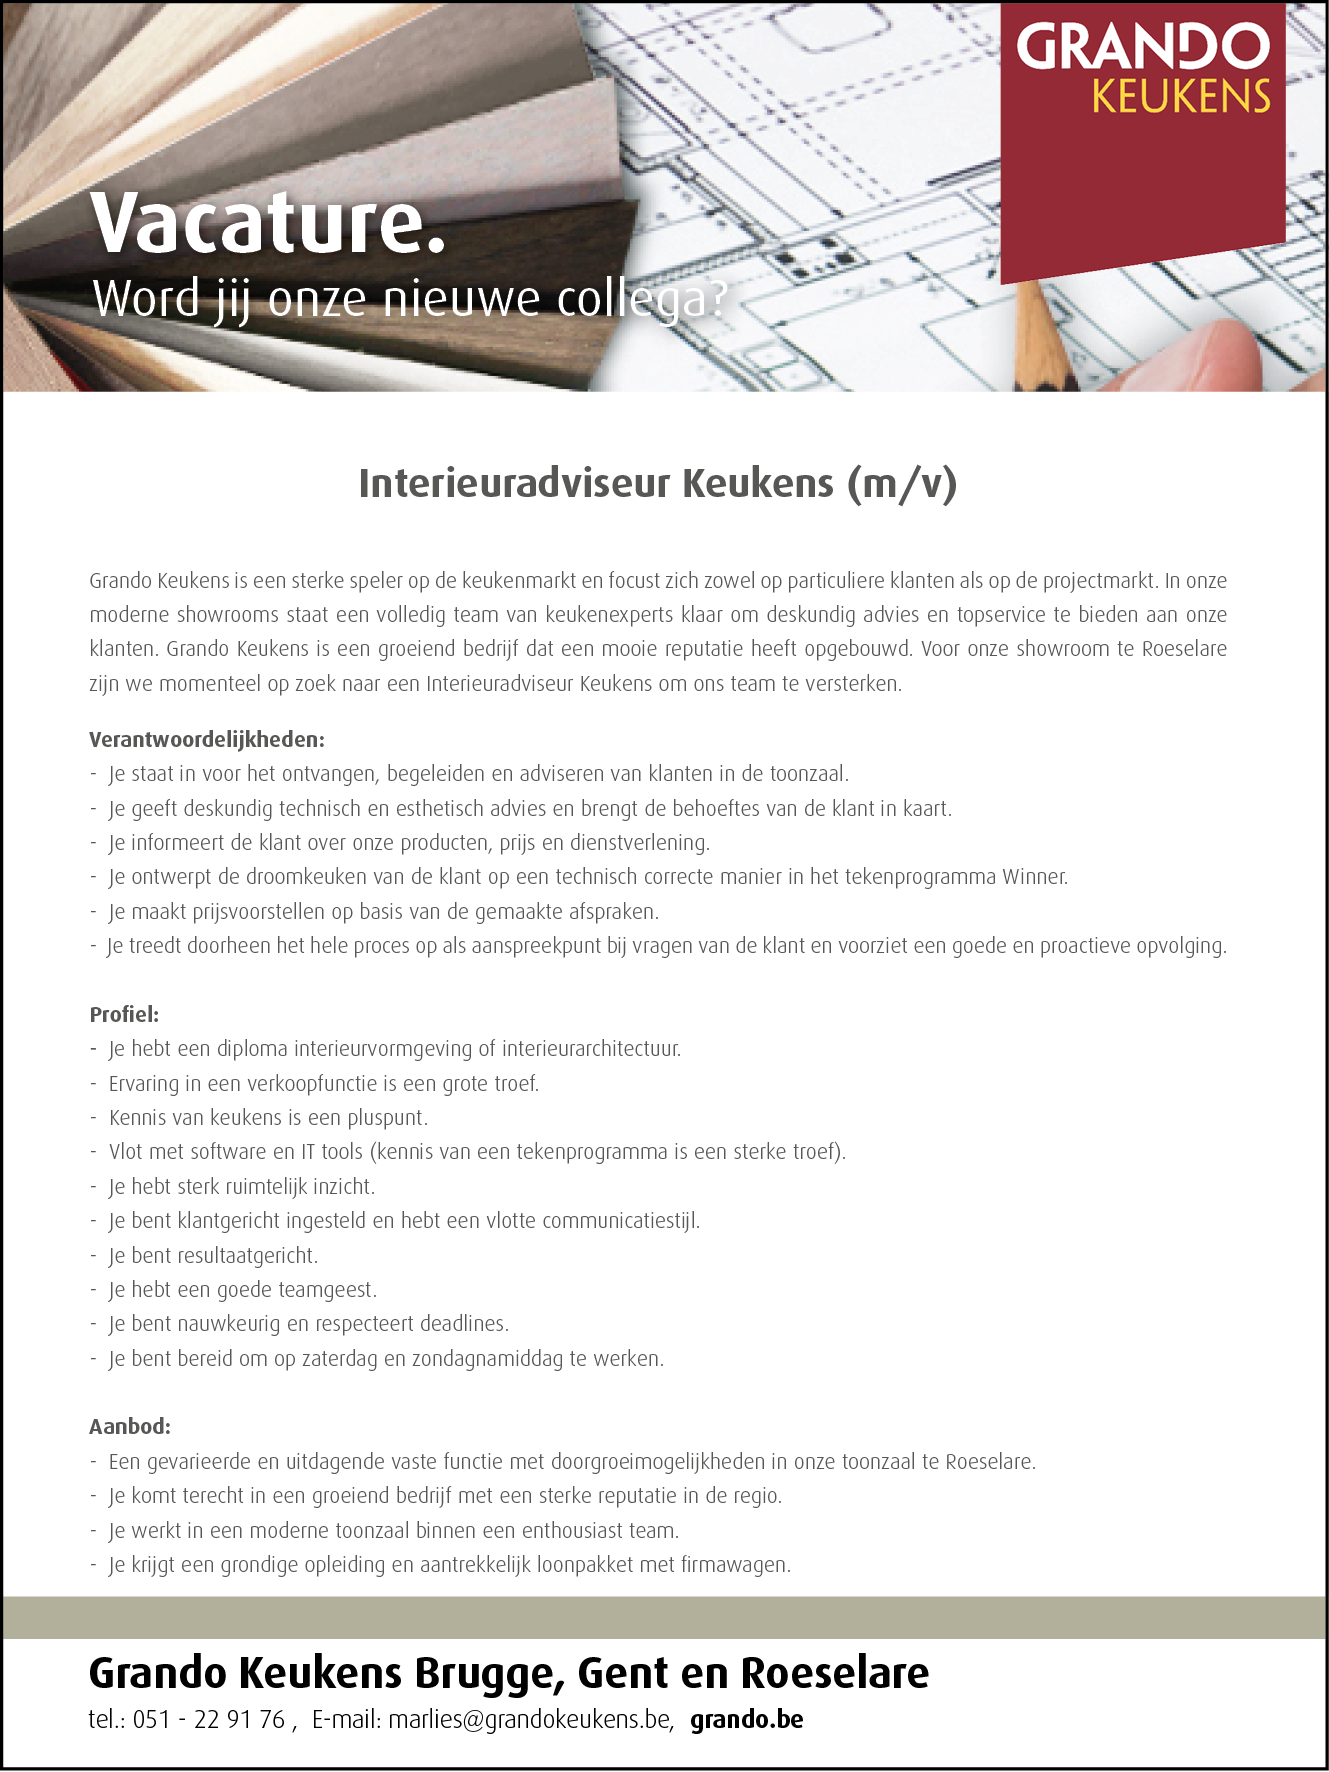 150x200 Vacature Lovanex Interieuradviseur keukens 2021_Roselare.png